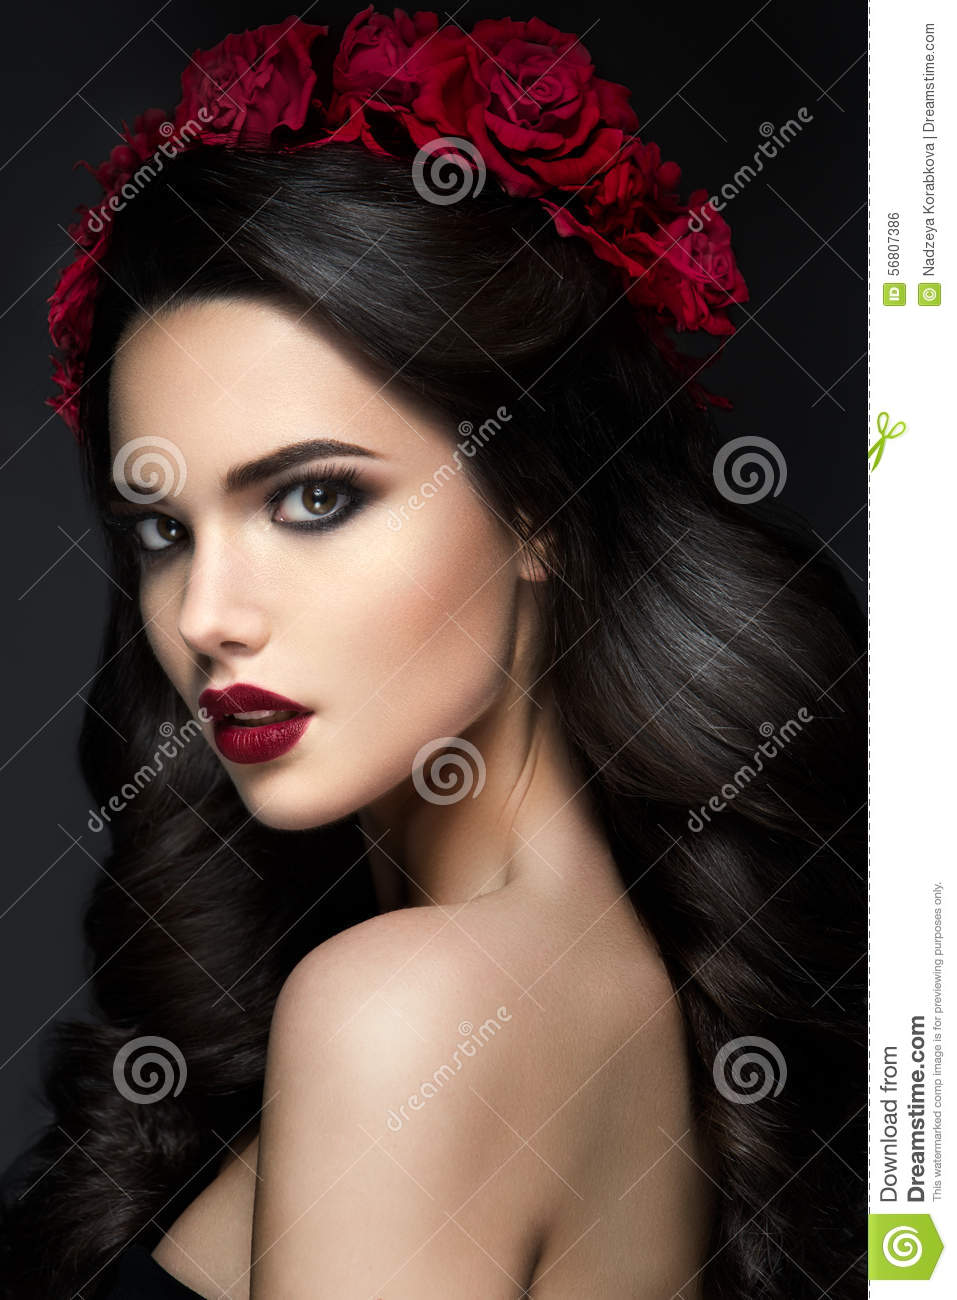 Beauty Fashion Model Girl Portrait With Roses Stock Photo ...